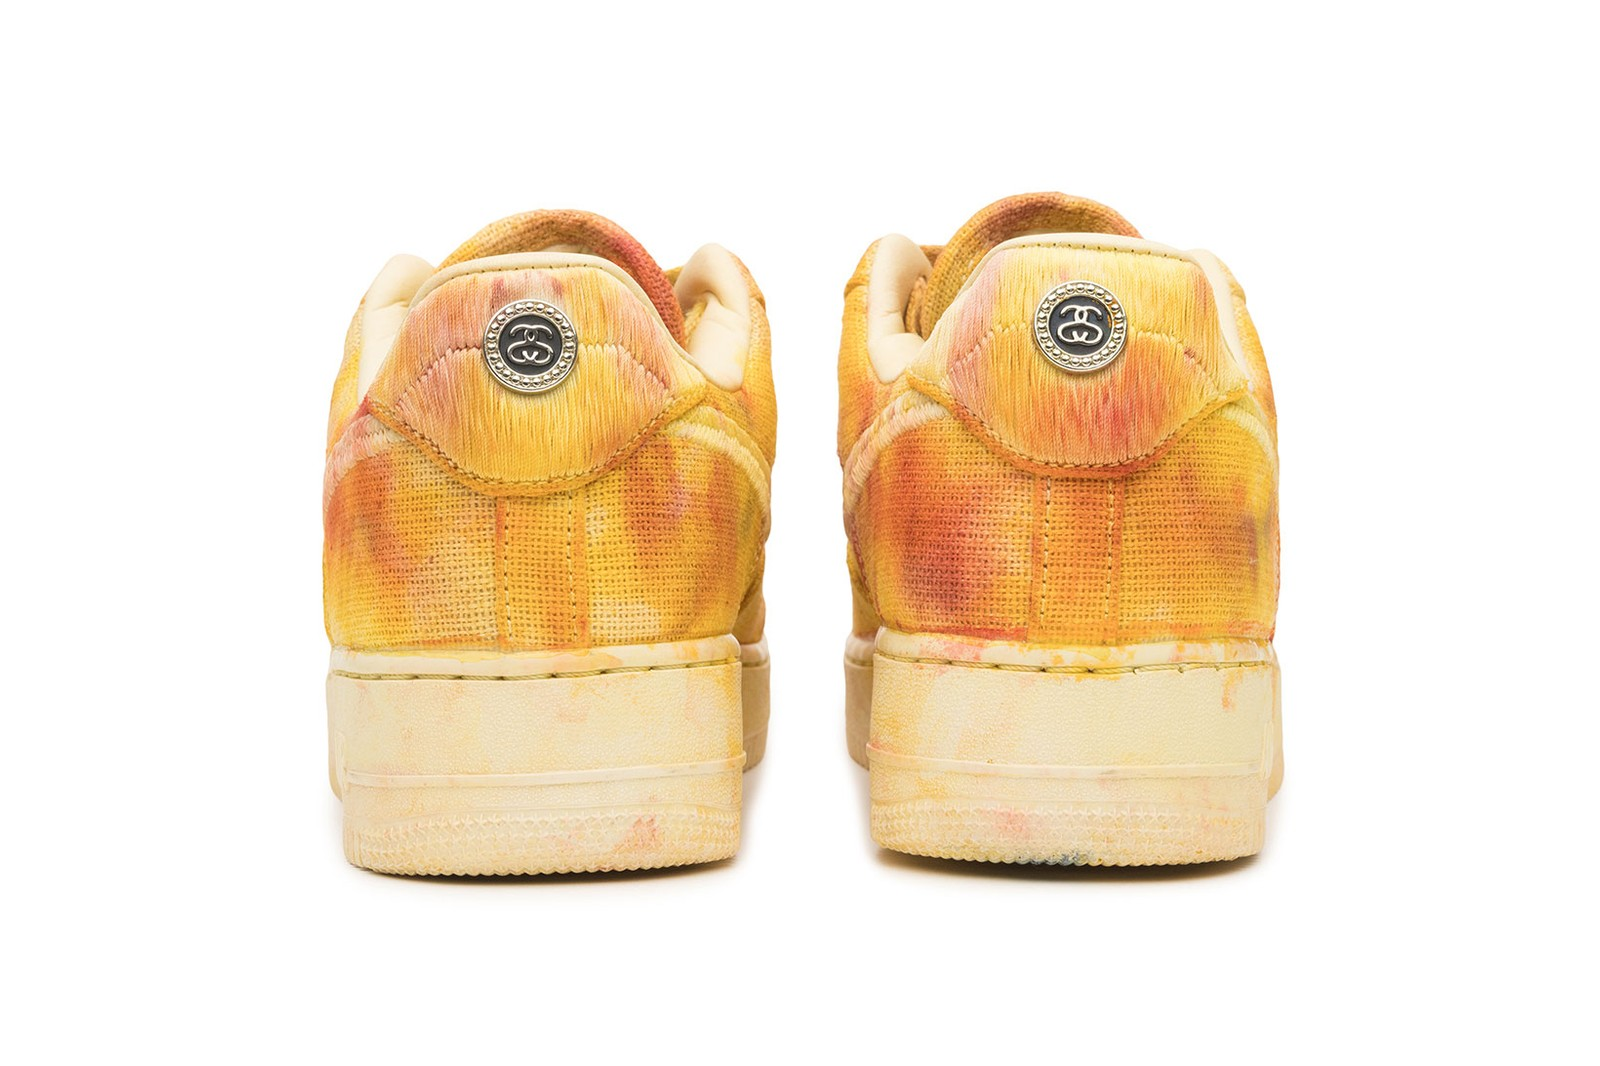 stussy nike air force 1 af1 hand-dyed sneakers puffer upcycled sustainable apparel collection